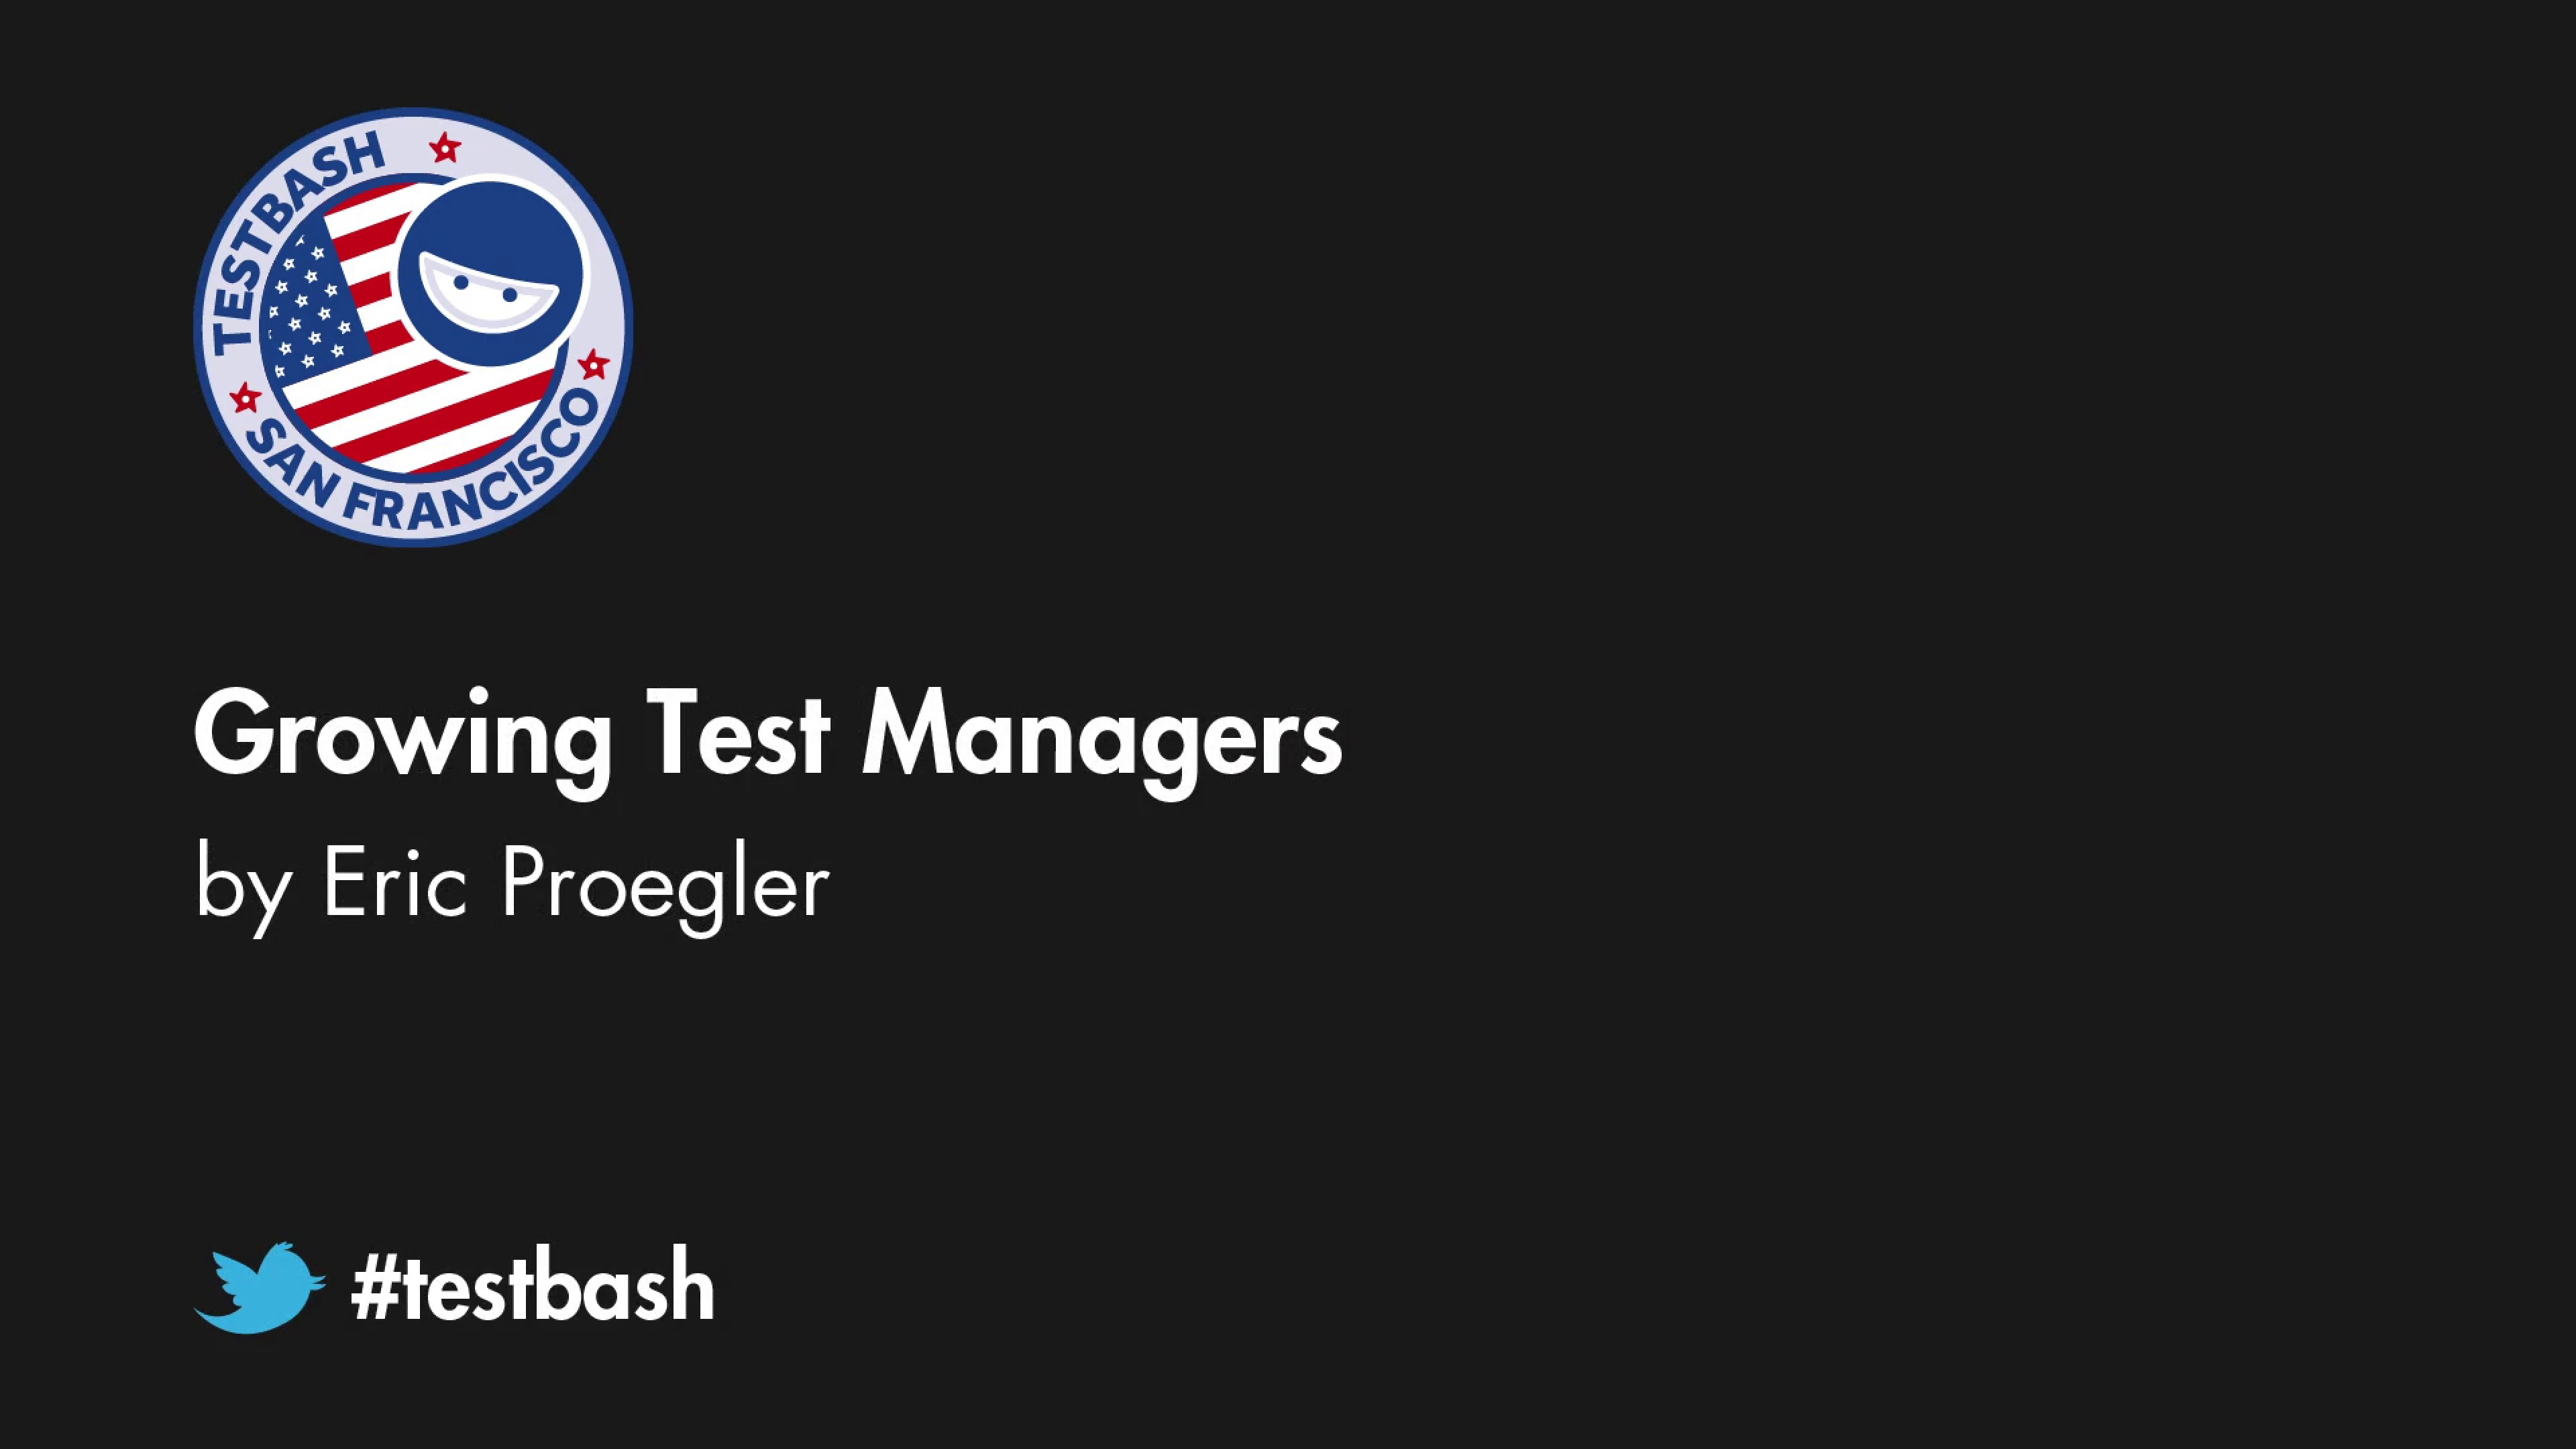 Growing Test Managers - Eric Proegler